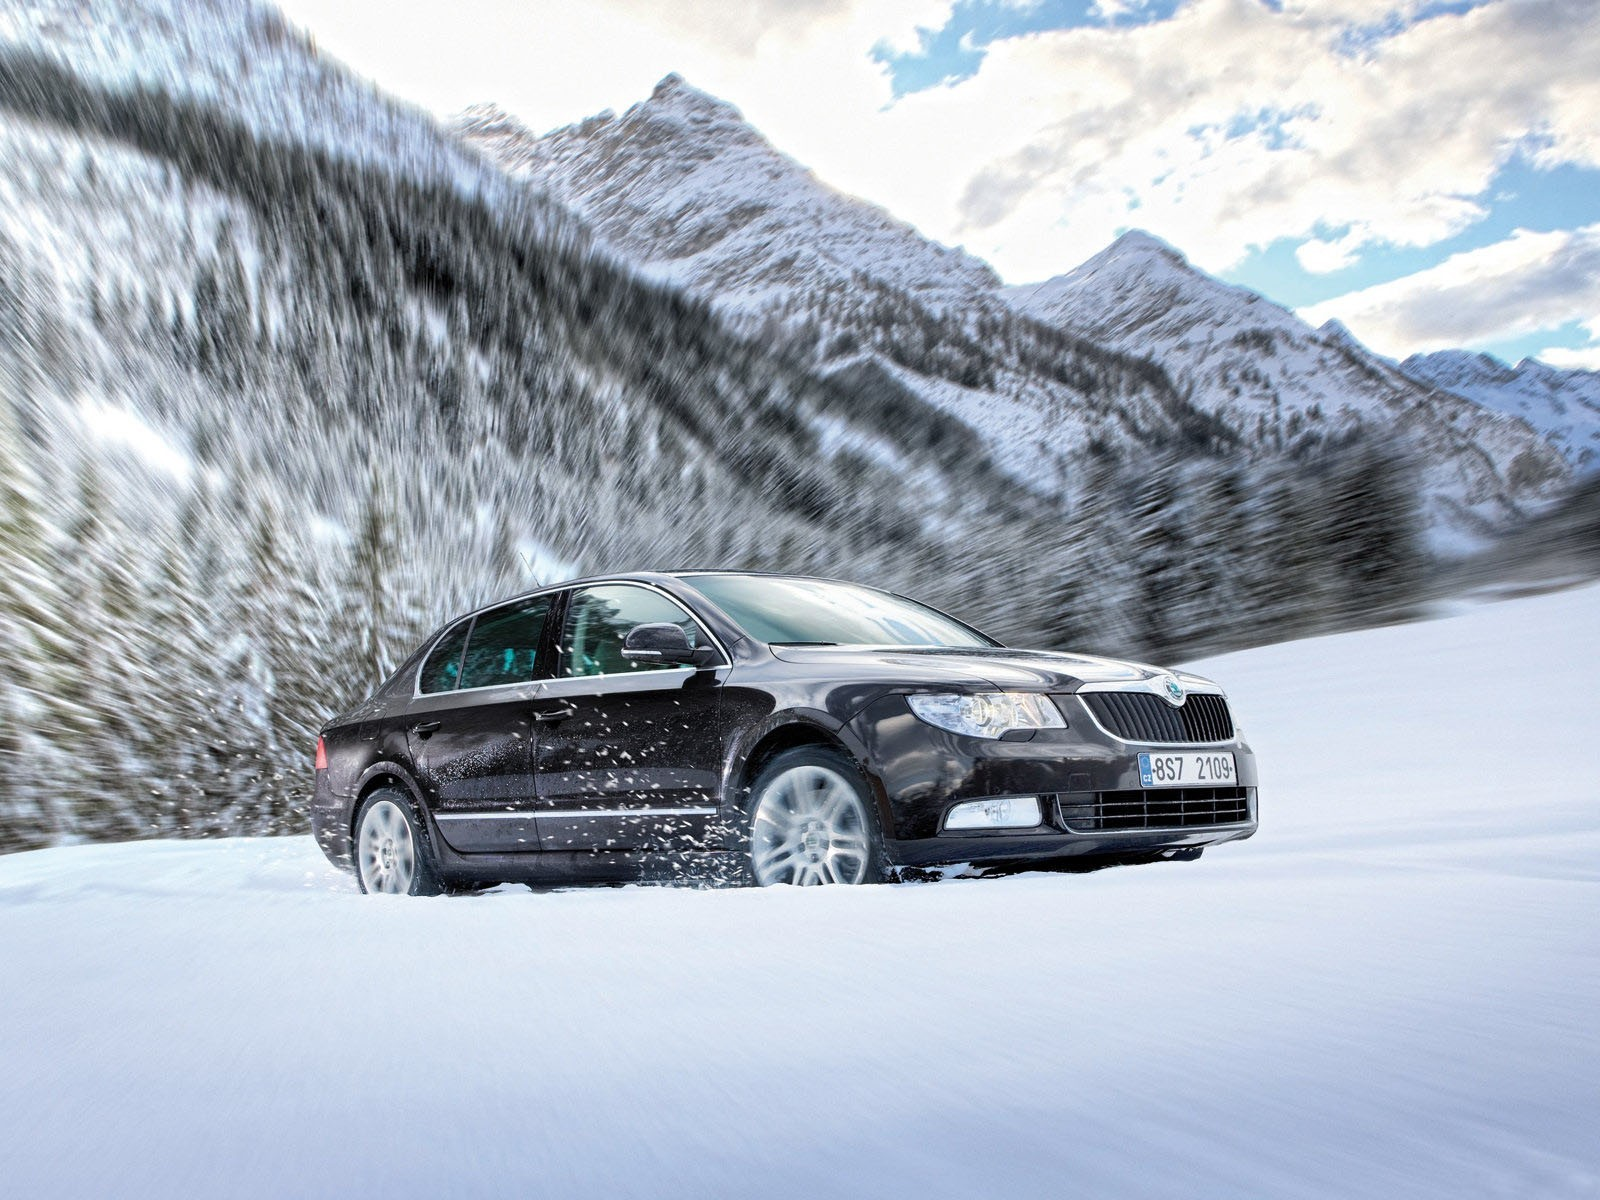 Rally Car Wallpaper Snow Skoda Superb Im Schnee Hintergrundbilder Skoda Superb Im